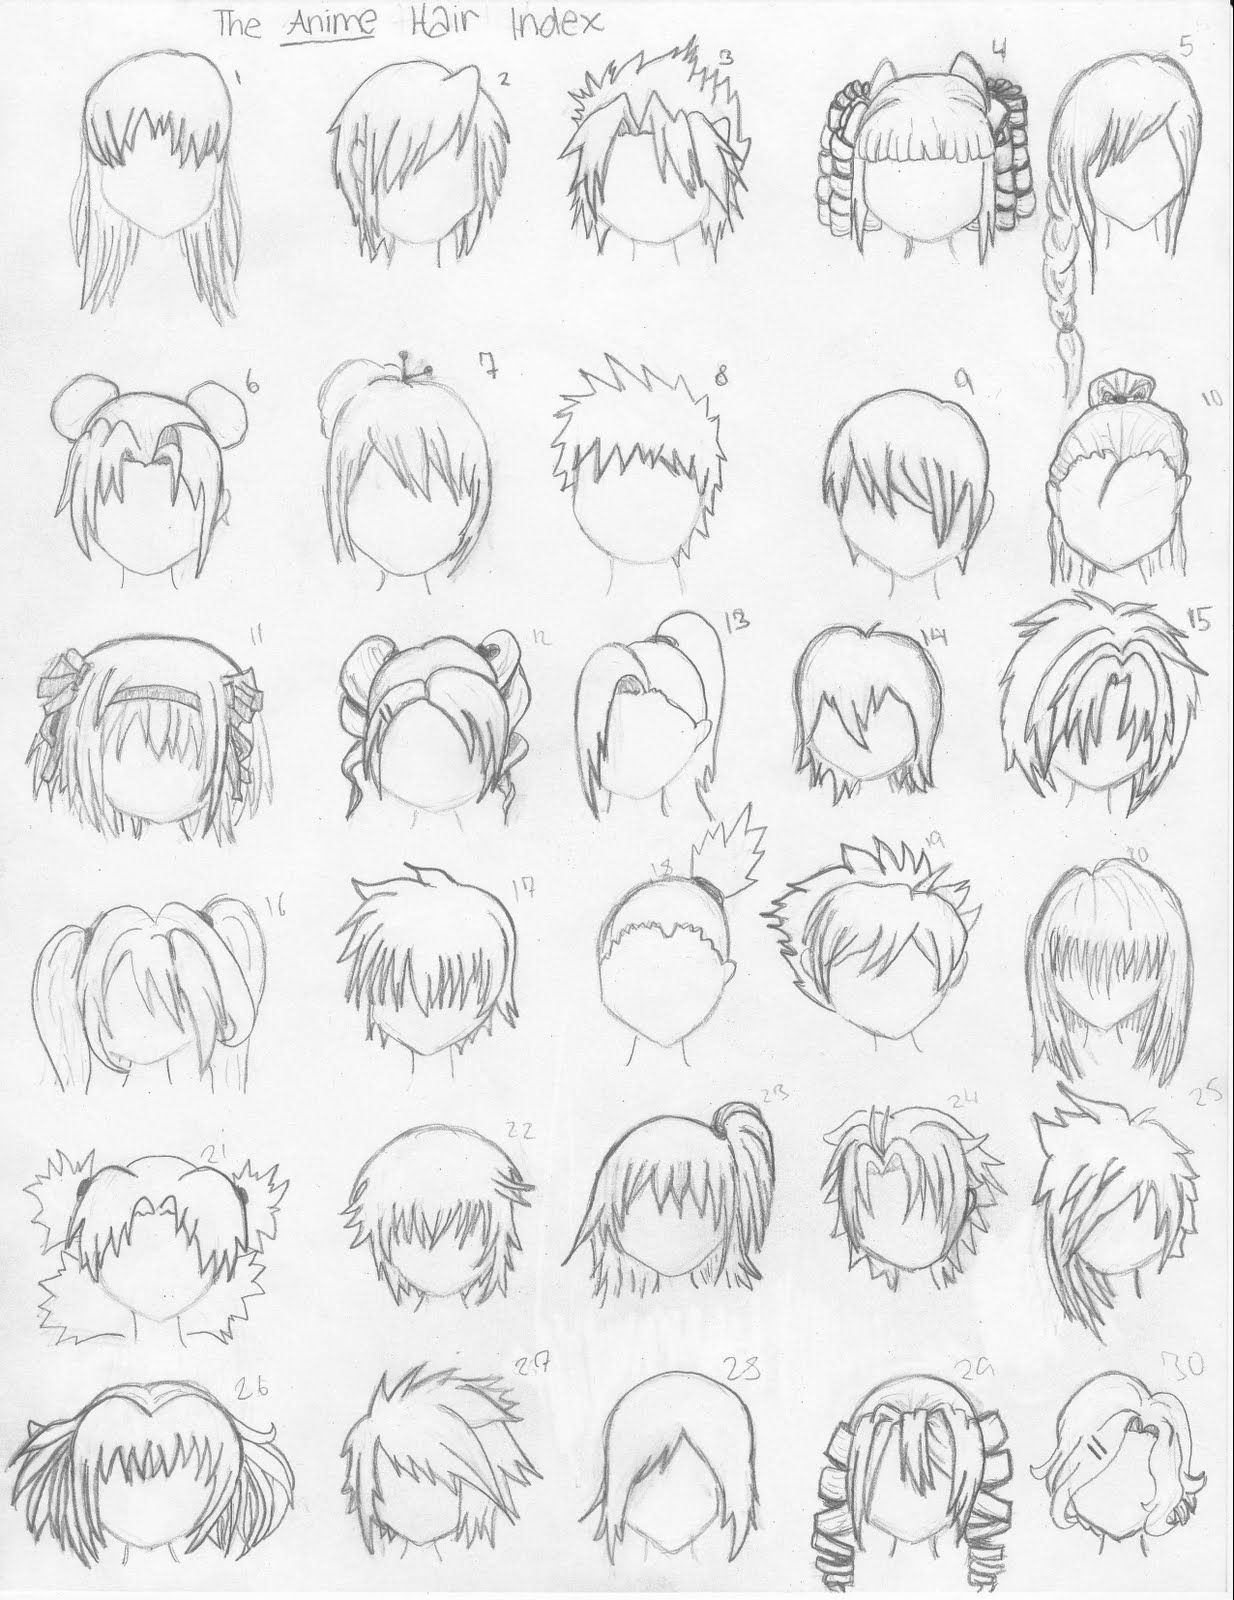 Familiar Faces... Nonfaces. How to draw anime hair